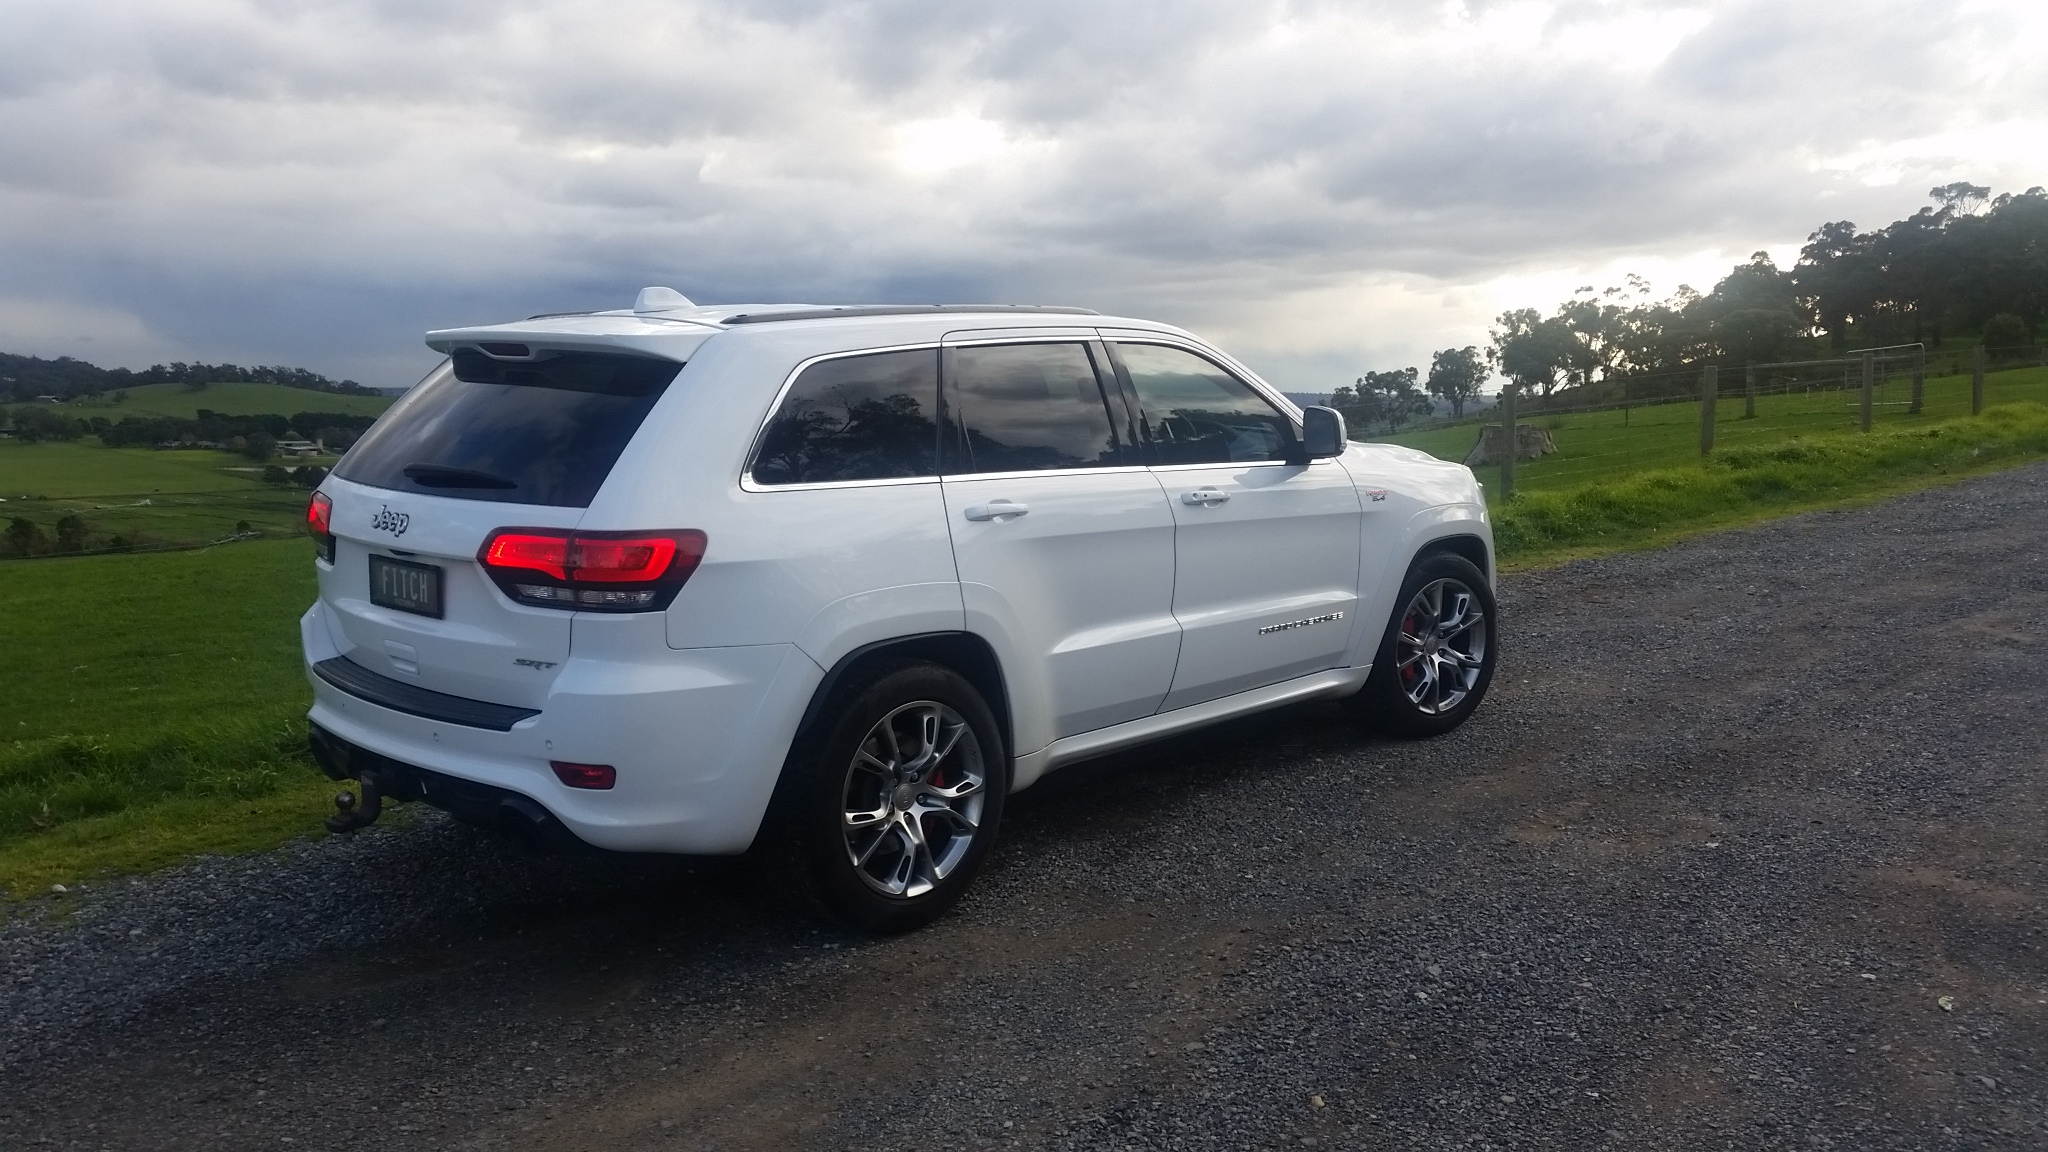 2014 jeep grand cherokee srt 8 4x4 wk my14 car sales vic melbourne 2943451. Black Bedroom Furniture Sets. Home Design Ideas